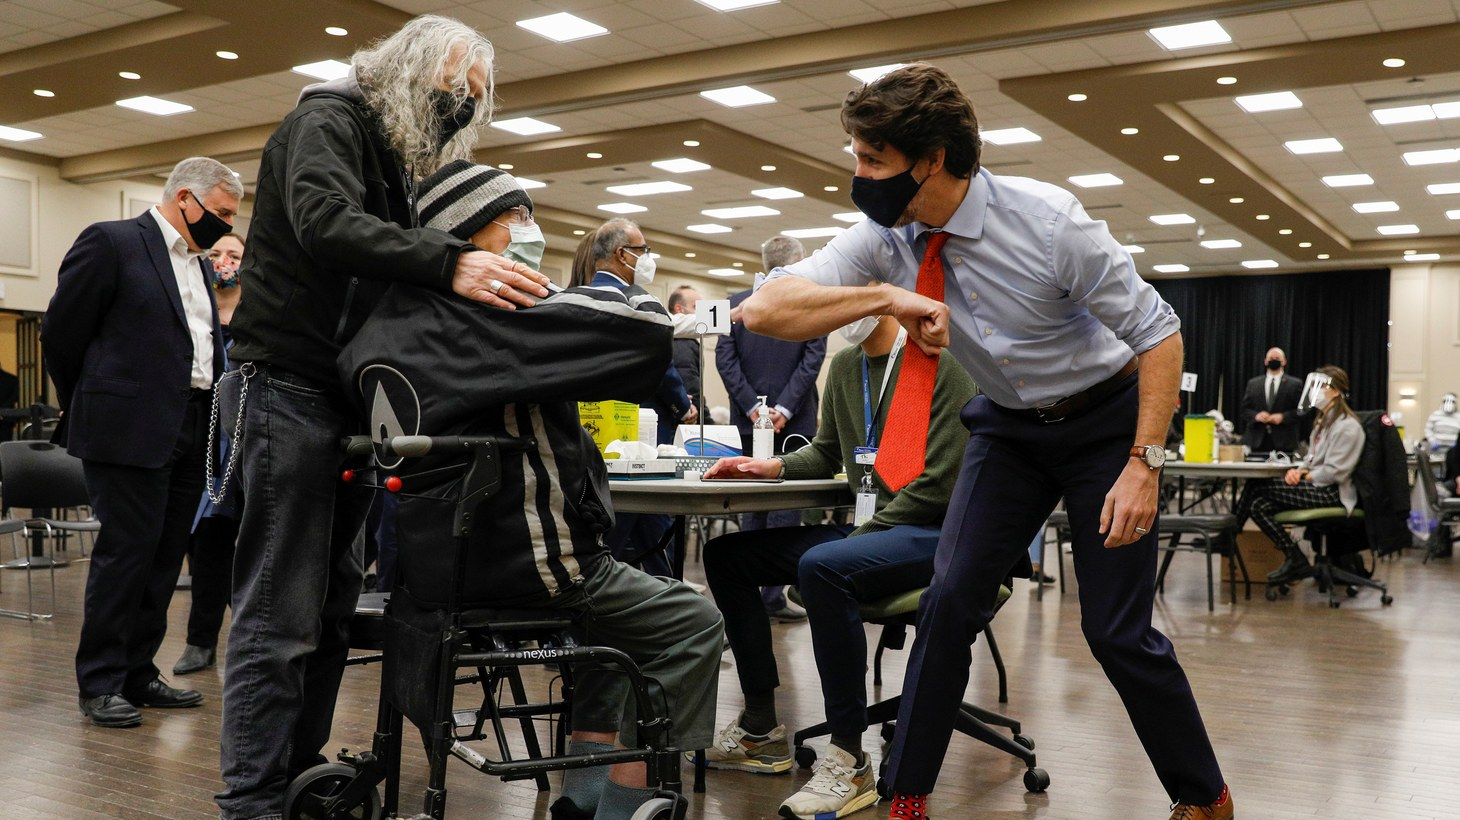 Canada's Prime Minister Justin Trudeau elbow-bumps a patient waiting to get their COVID-19 vaccination at a clinic, as efforts continue to help slow the spread of the coronavirus disease, in Ottawa, Ontario, Canada March 30, 2021.